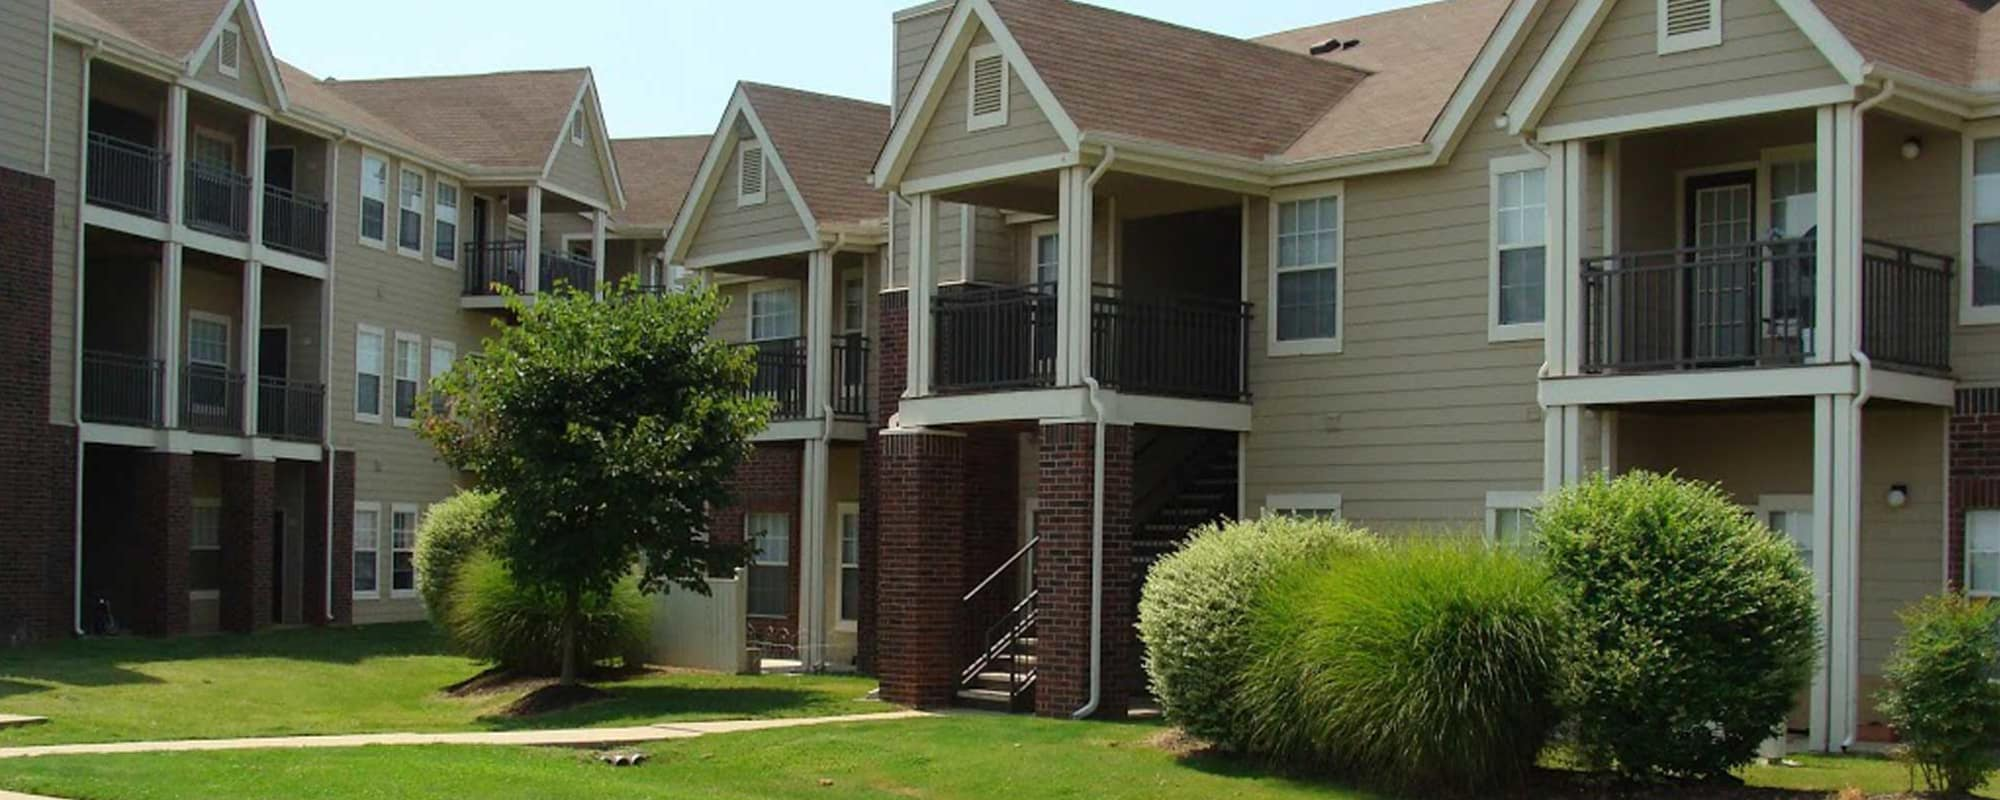 Apartments at Harbin Pointe Apartments in Bentonville, Arkansas